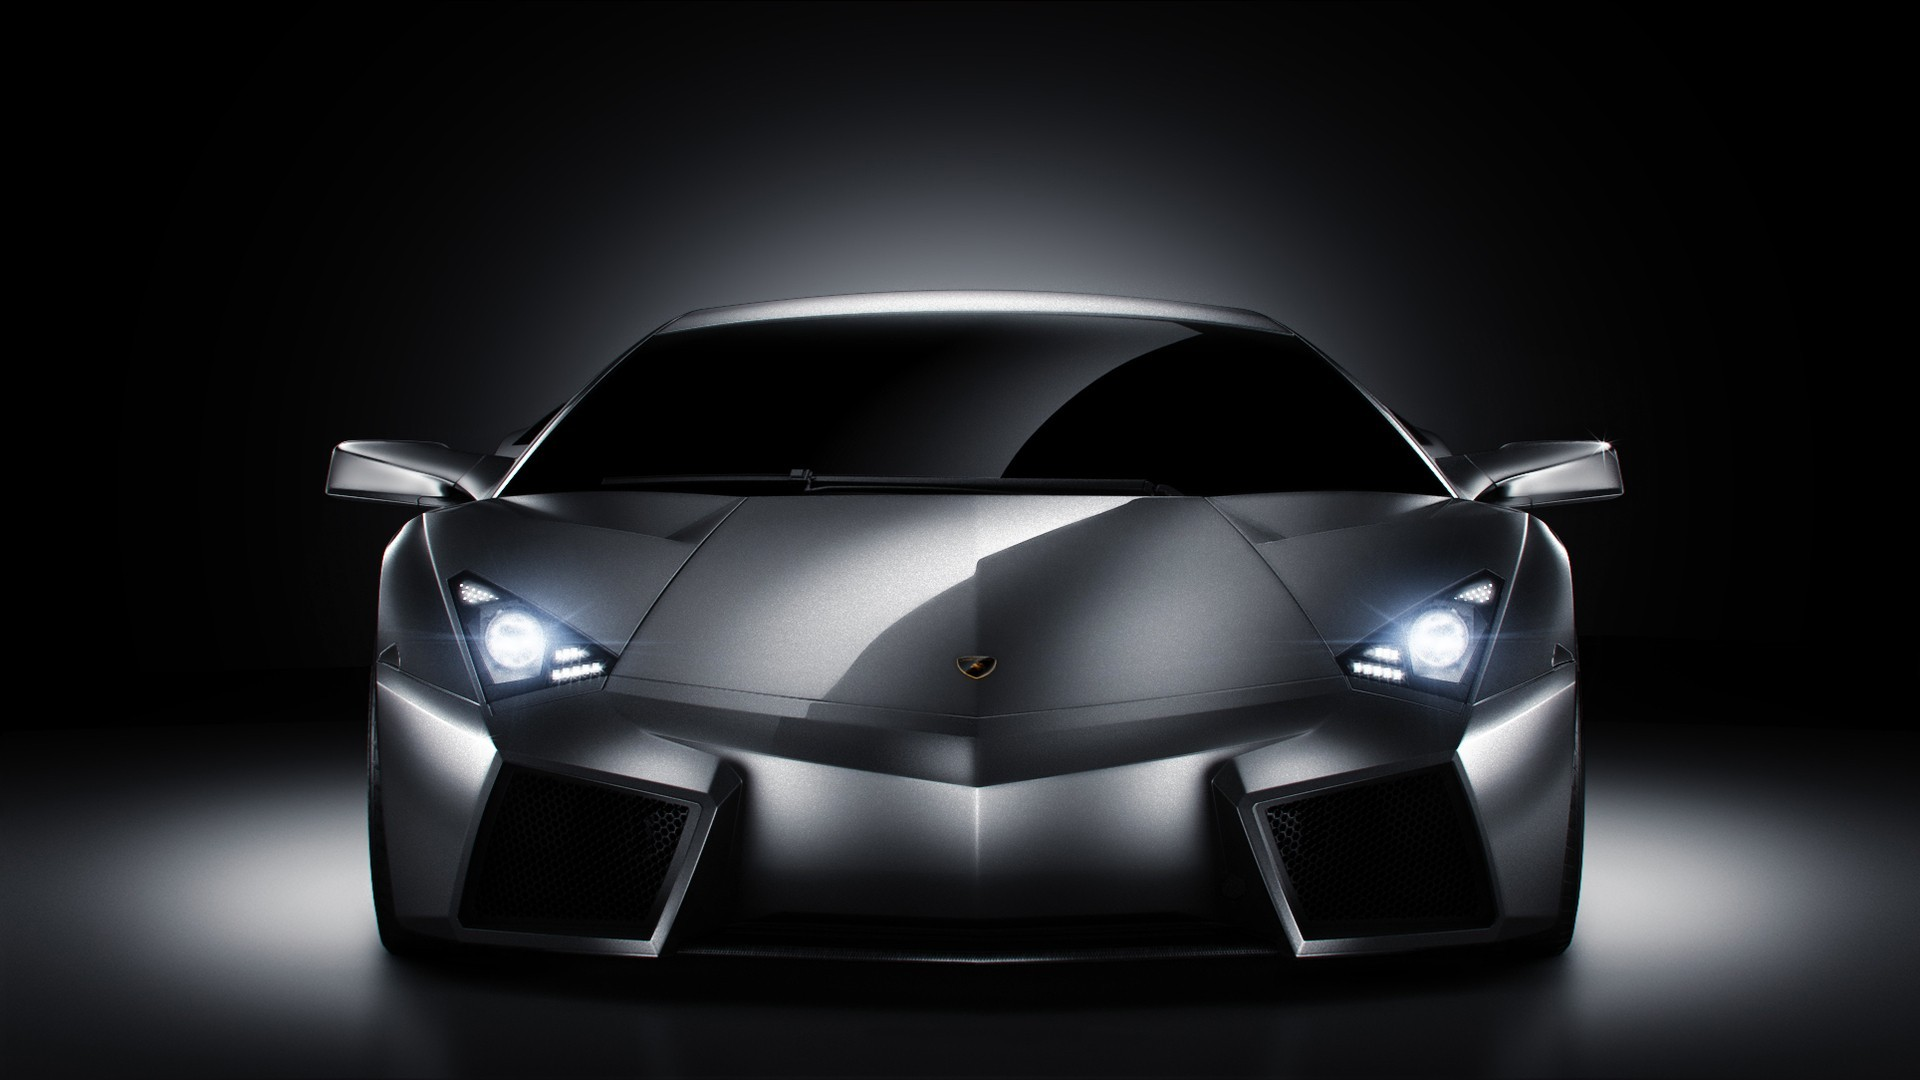 Cool Lamborghini Luxury 12 On Lamborghini Catalogs Cool Lamborghini New 10 On Lamborghini Images ...